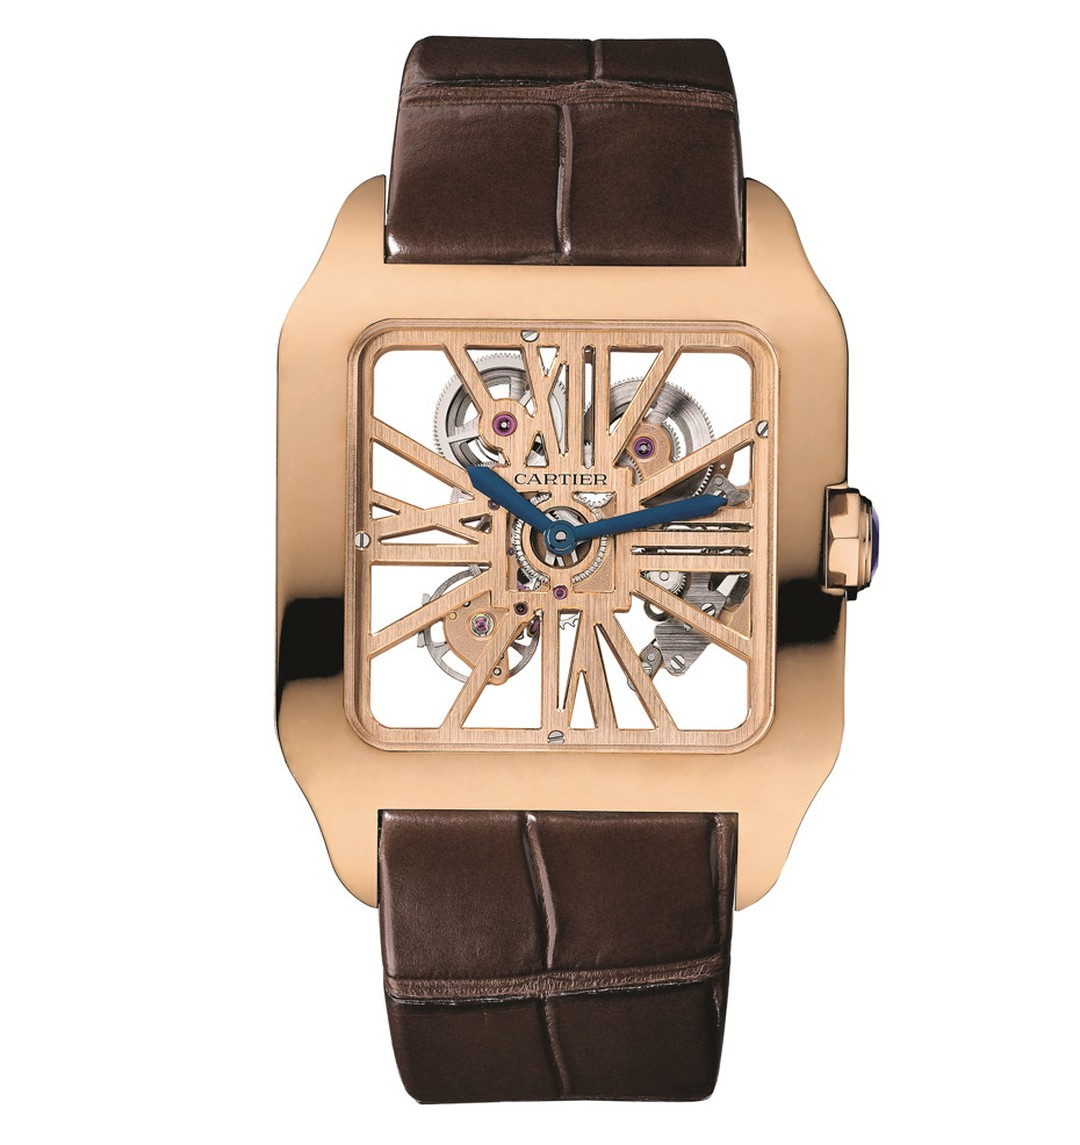 Cartier Santos-Dumont Skeleton watch in rich rose gold with a skeletonised dial, large Roman numerals and a front-row view of the movement.